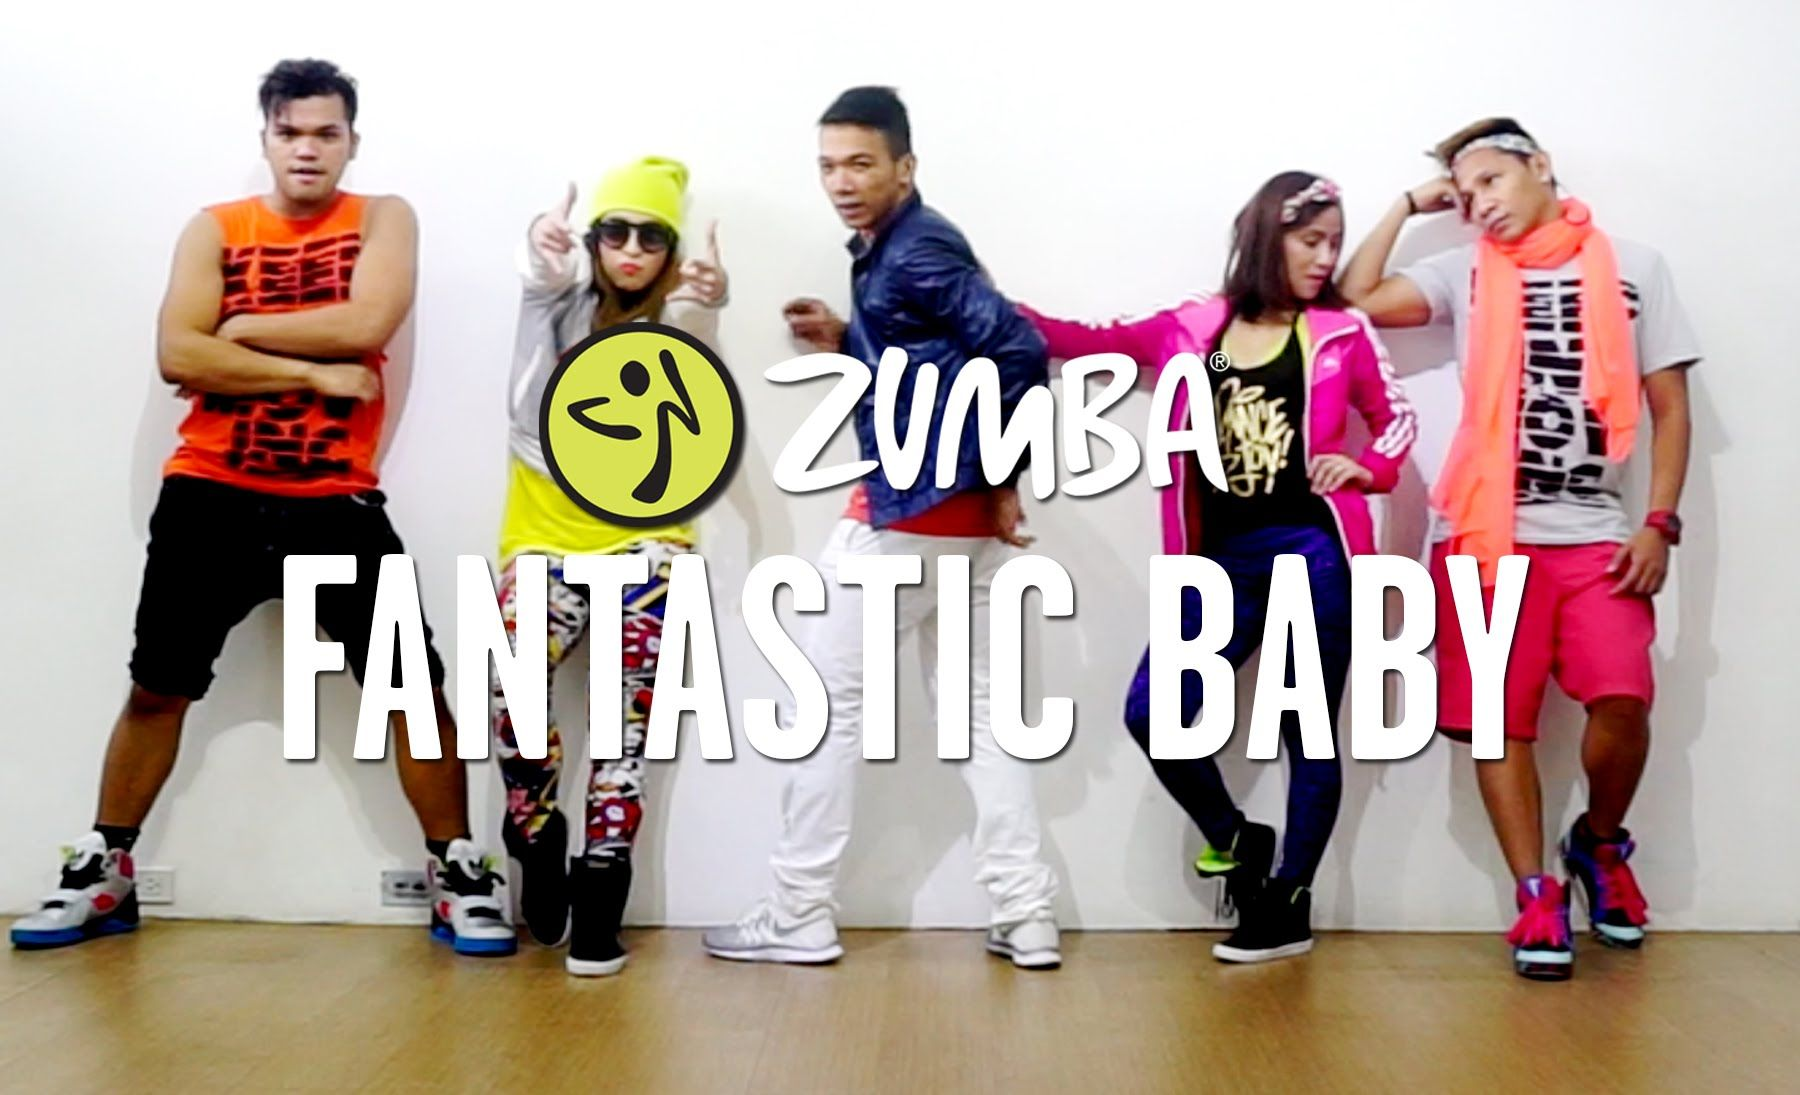 Fantastic Baby by BIGBANG | Zumba® Fitness | Live Love Party